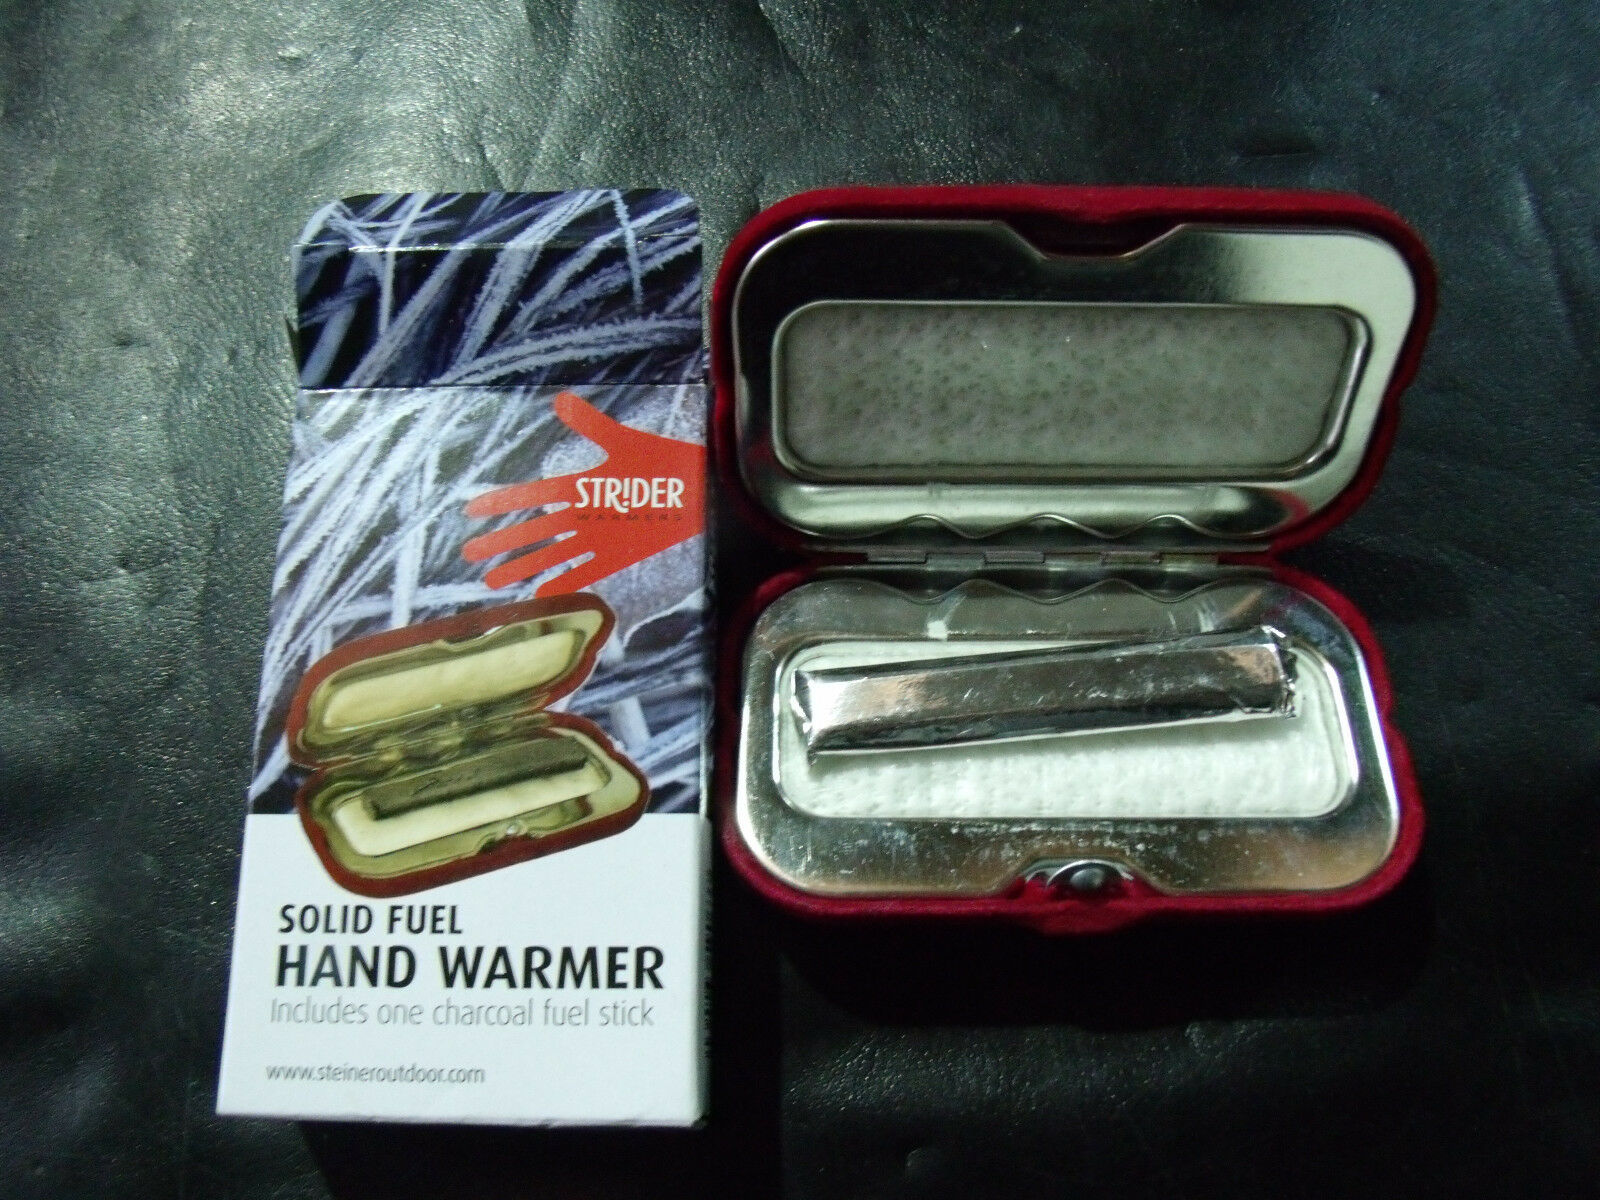 2 x Strider Solid Fuel Charcoal Pocket Hand Warmer//Heater